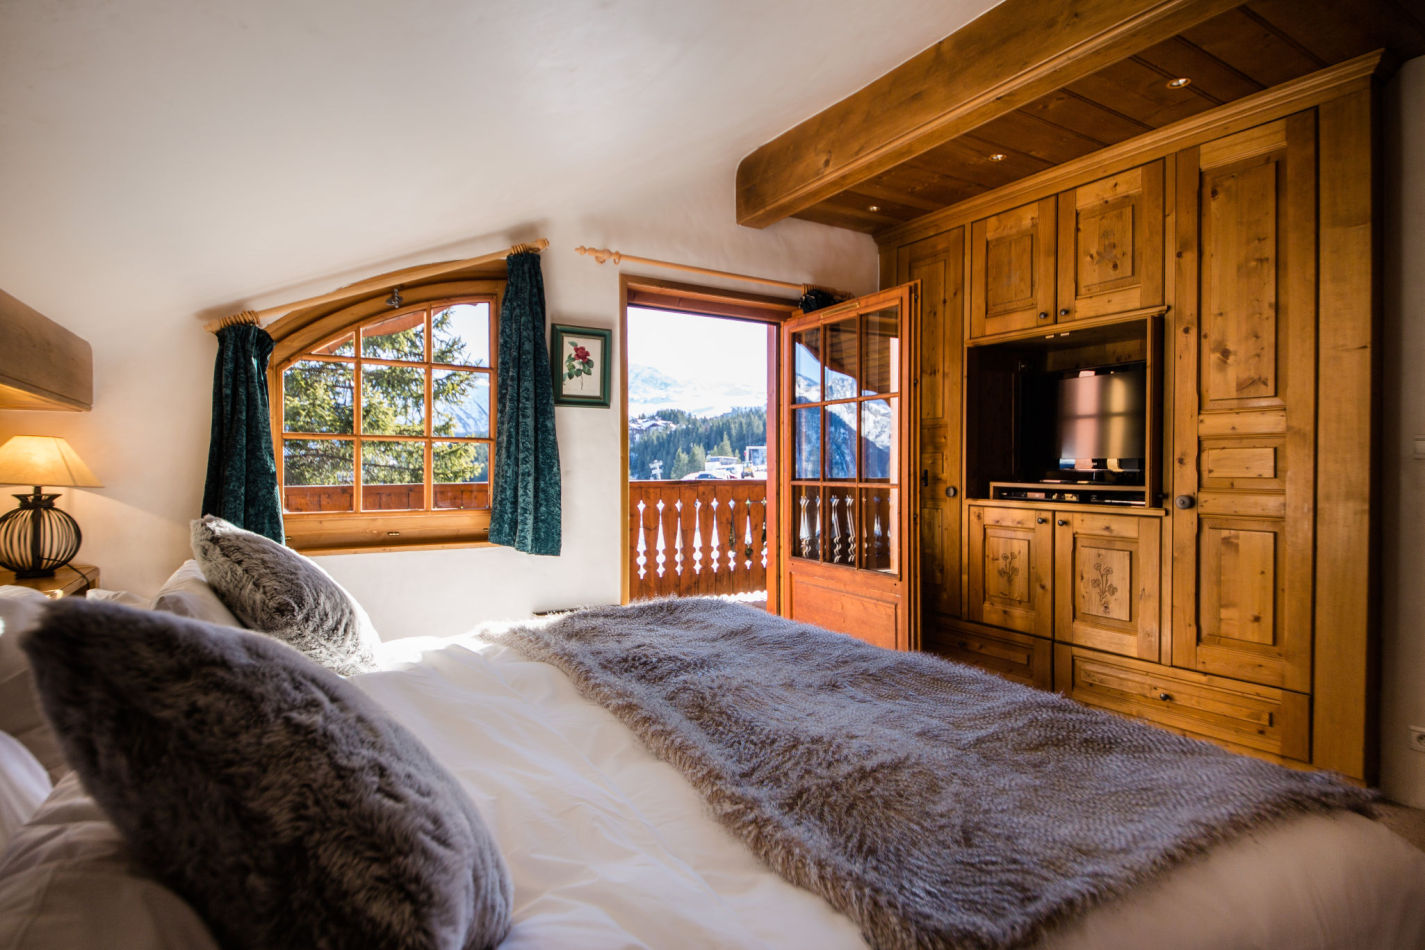 chalet-maisonnee-a-bedroom-image-2